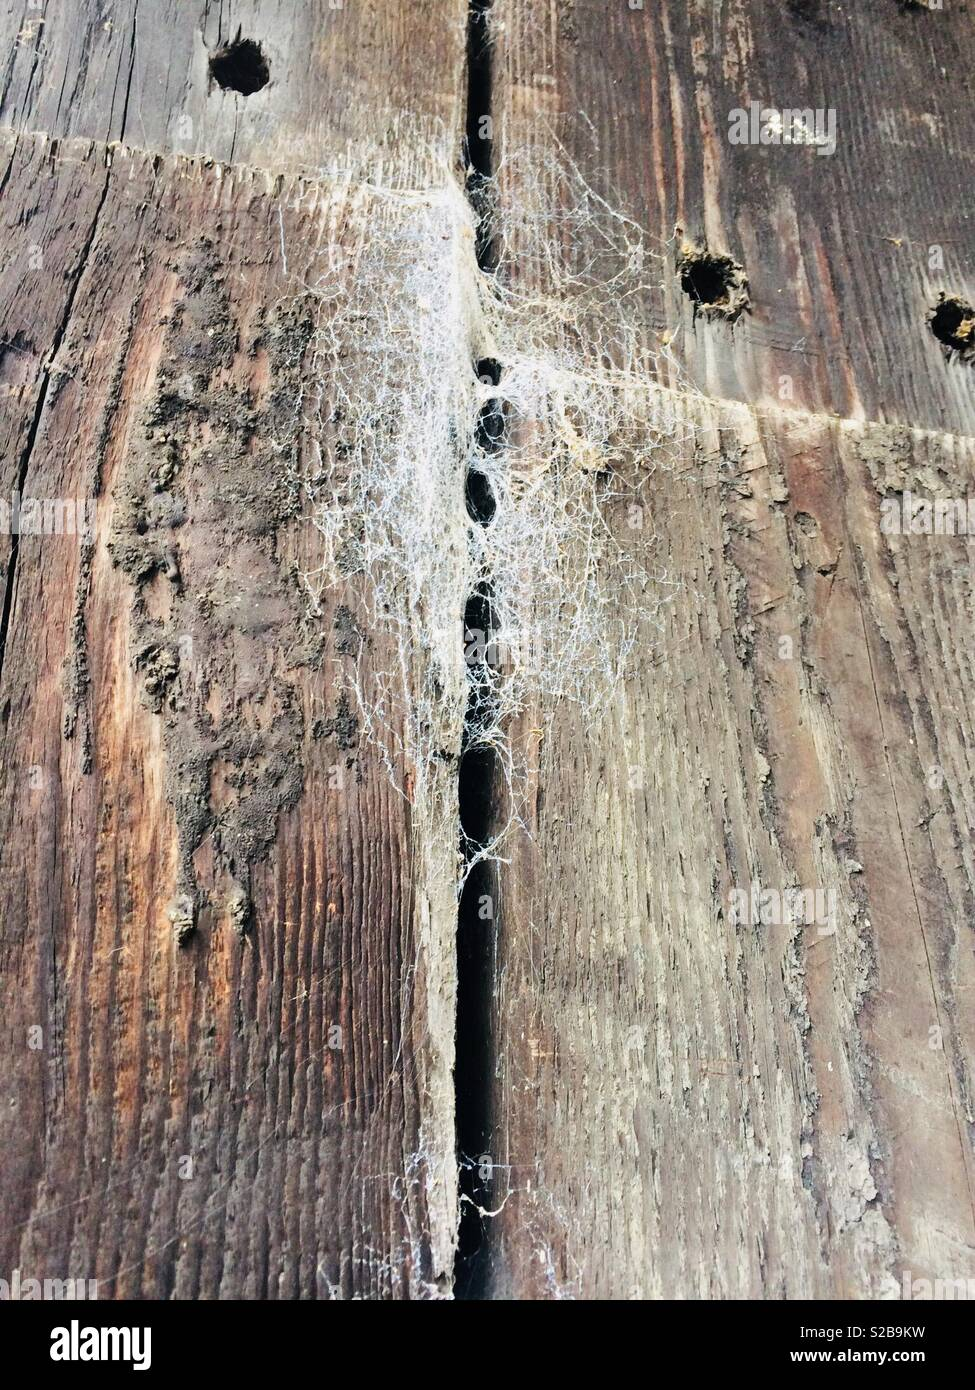 Funnel web spiders webs in an old barn - Stock Image